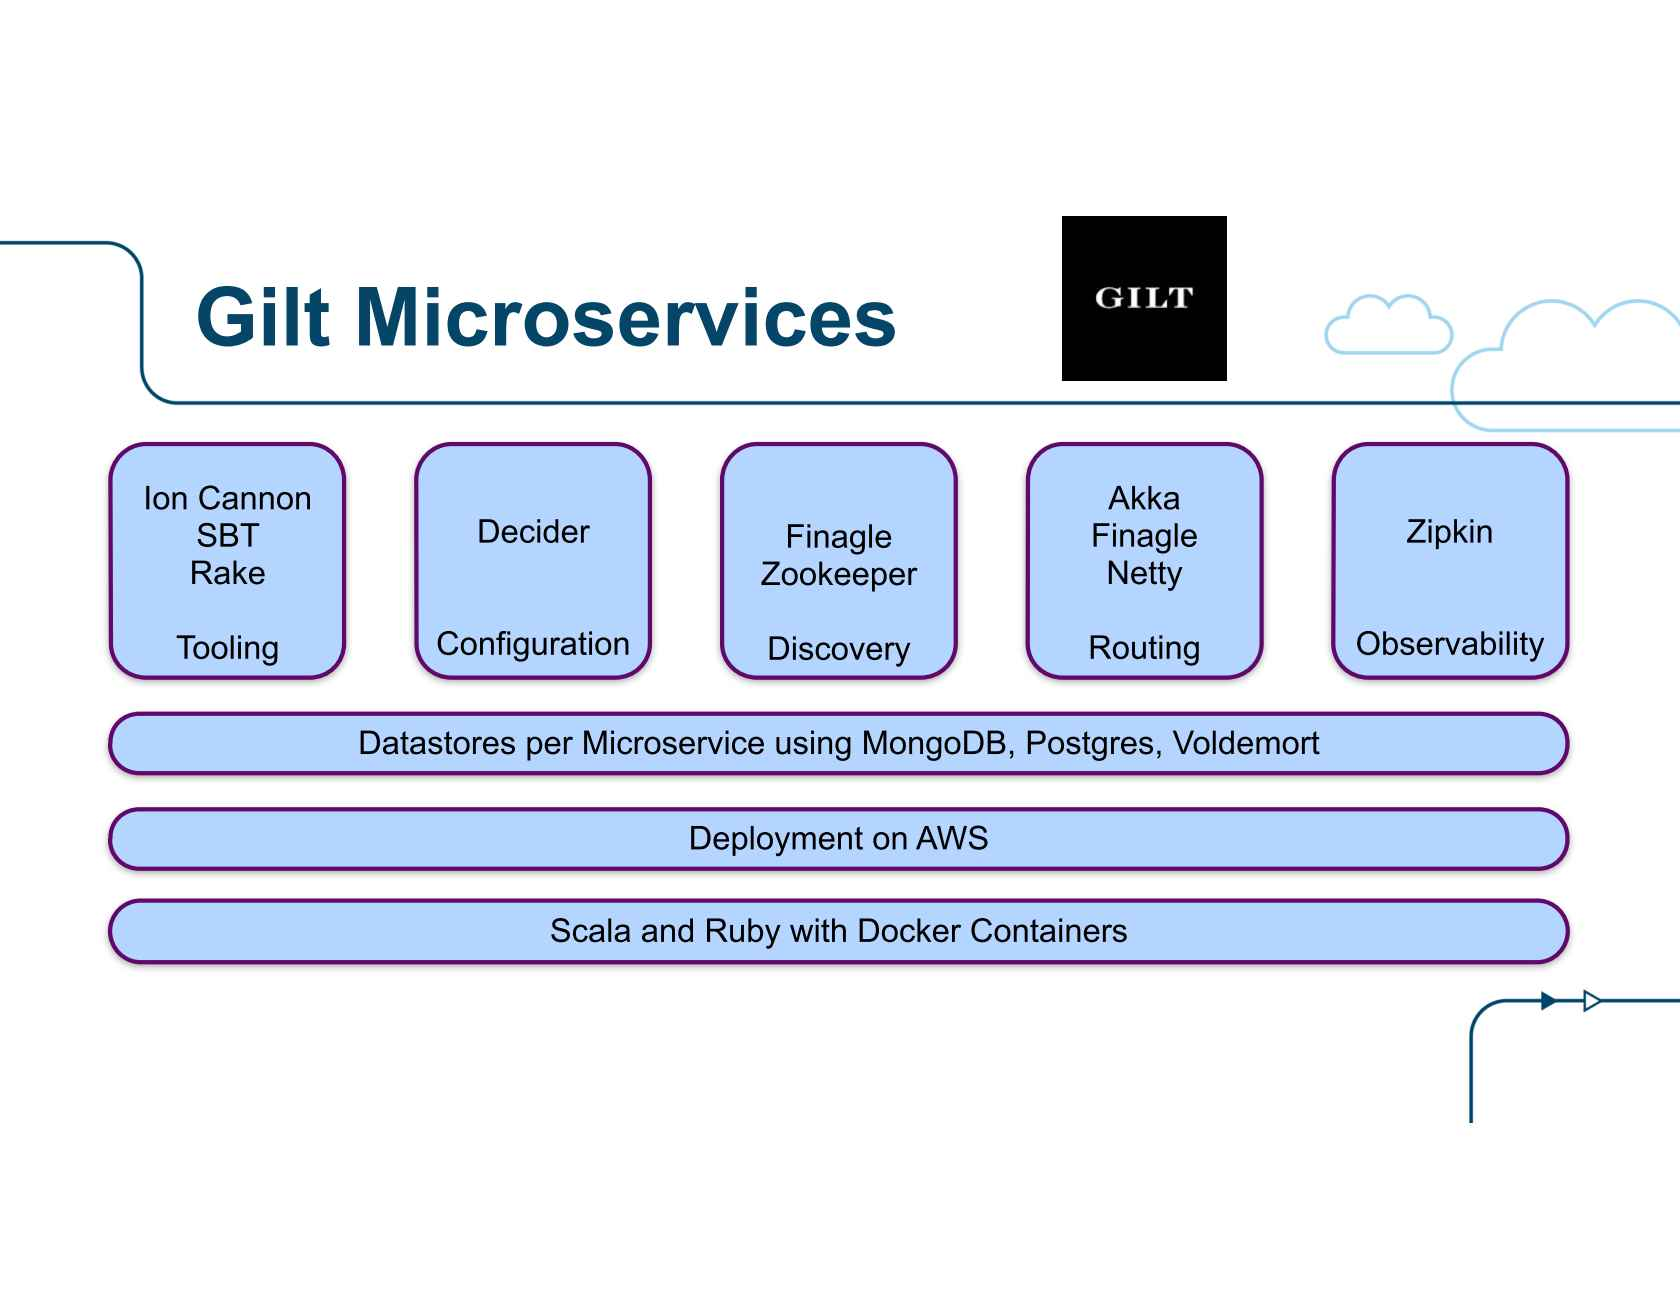 State of the Art in Microservices